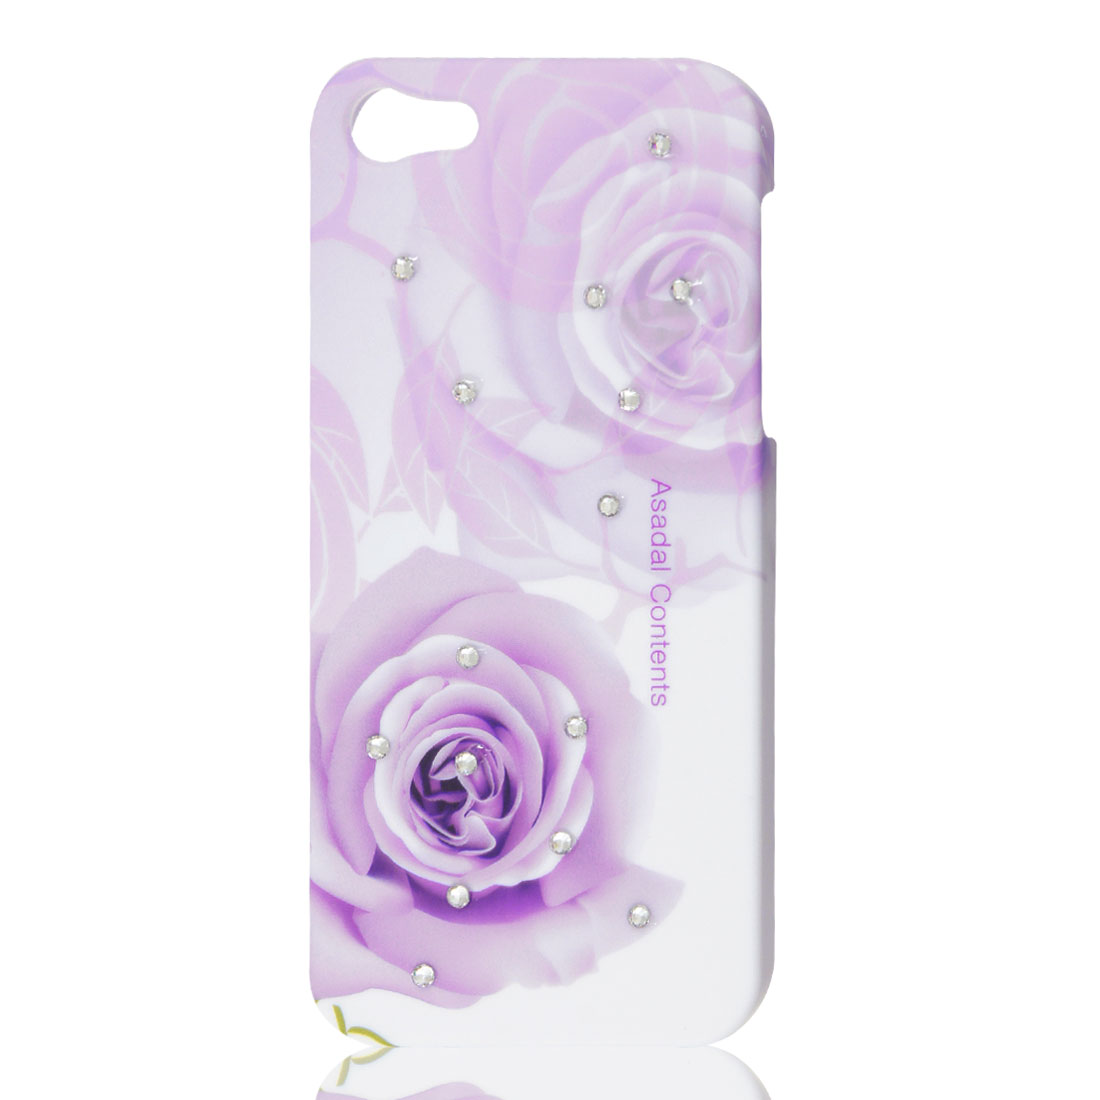 Glitter Rhinestone Rose Flower Pattern Hard Shell Back Case for Apple iPhone 5G